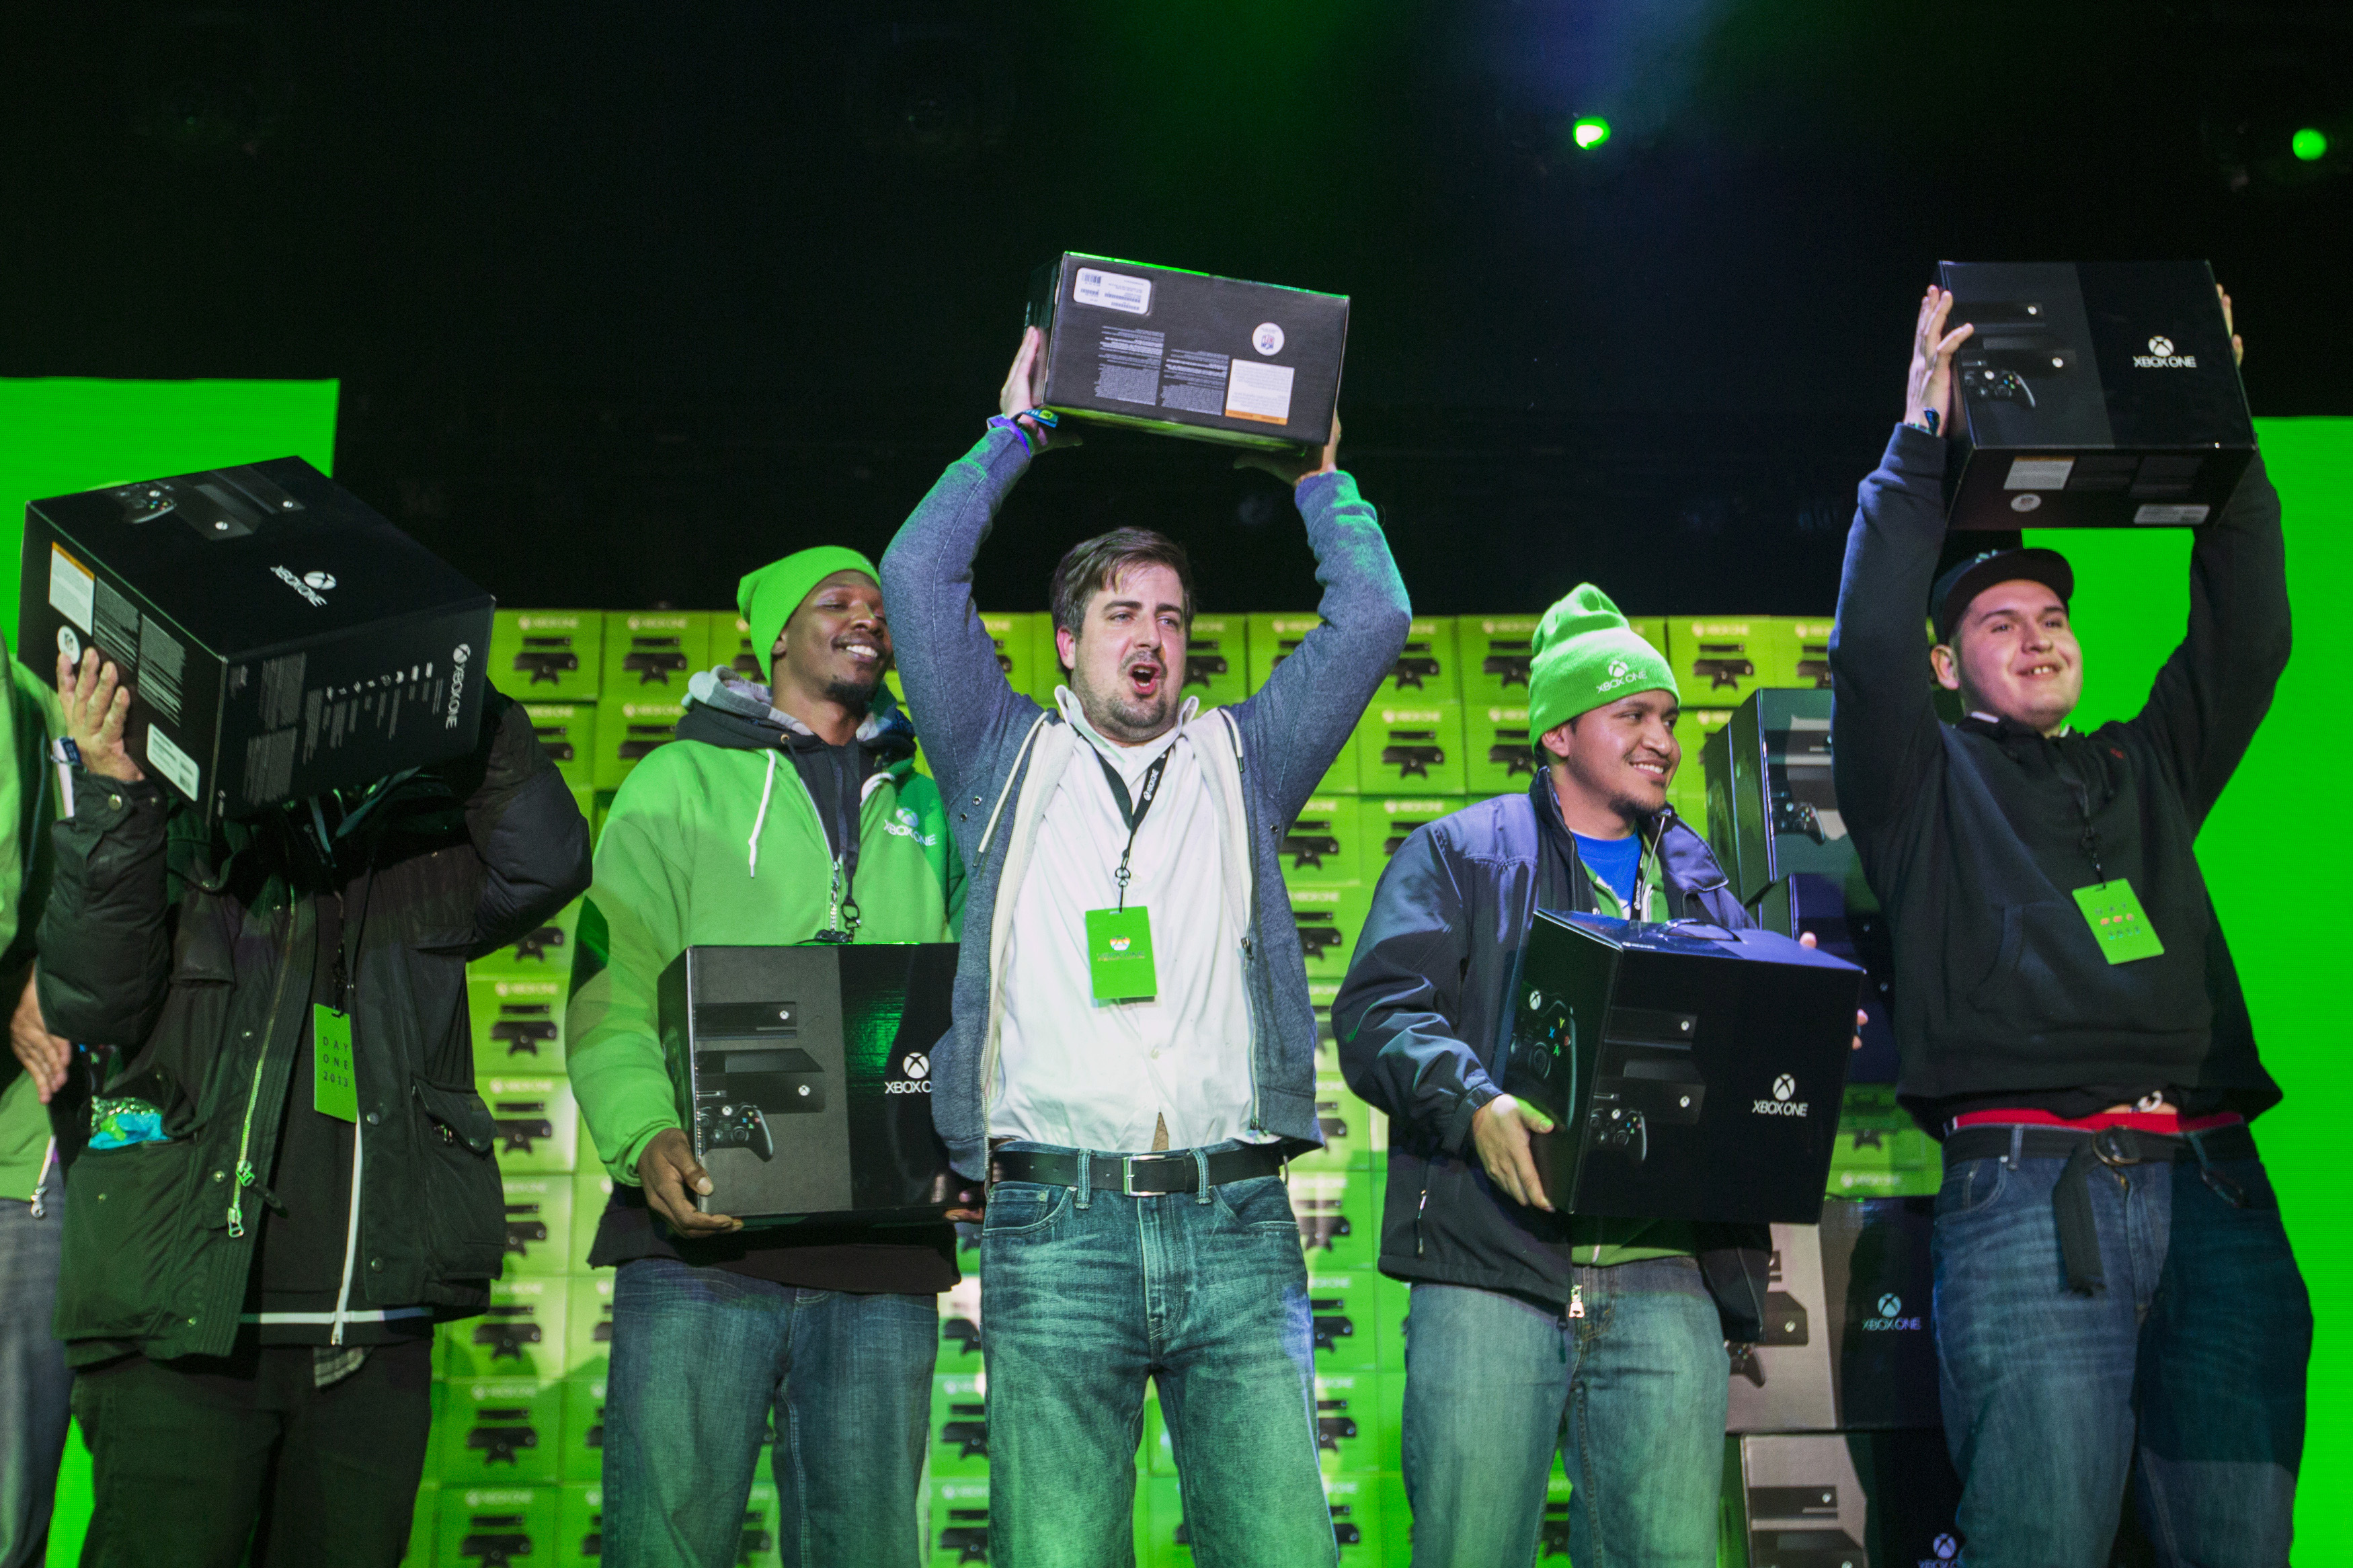 Customers hold aloft their Xbox One consoles purchased during a midnight launch event in New York November 22, 2013. REUTERS/Lucas Jackson